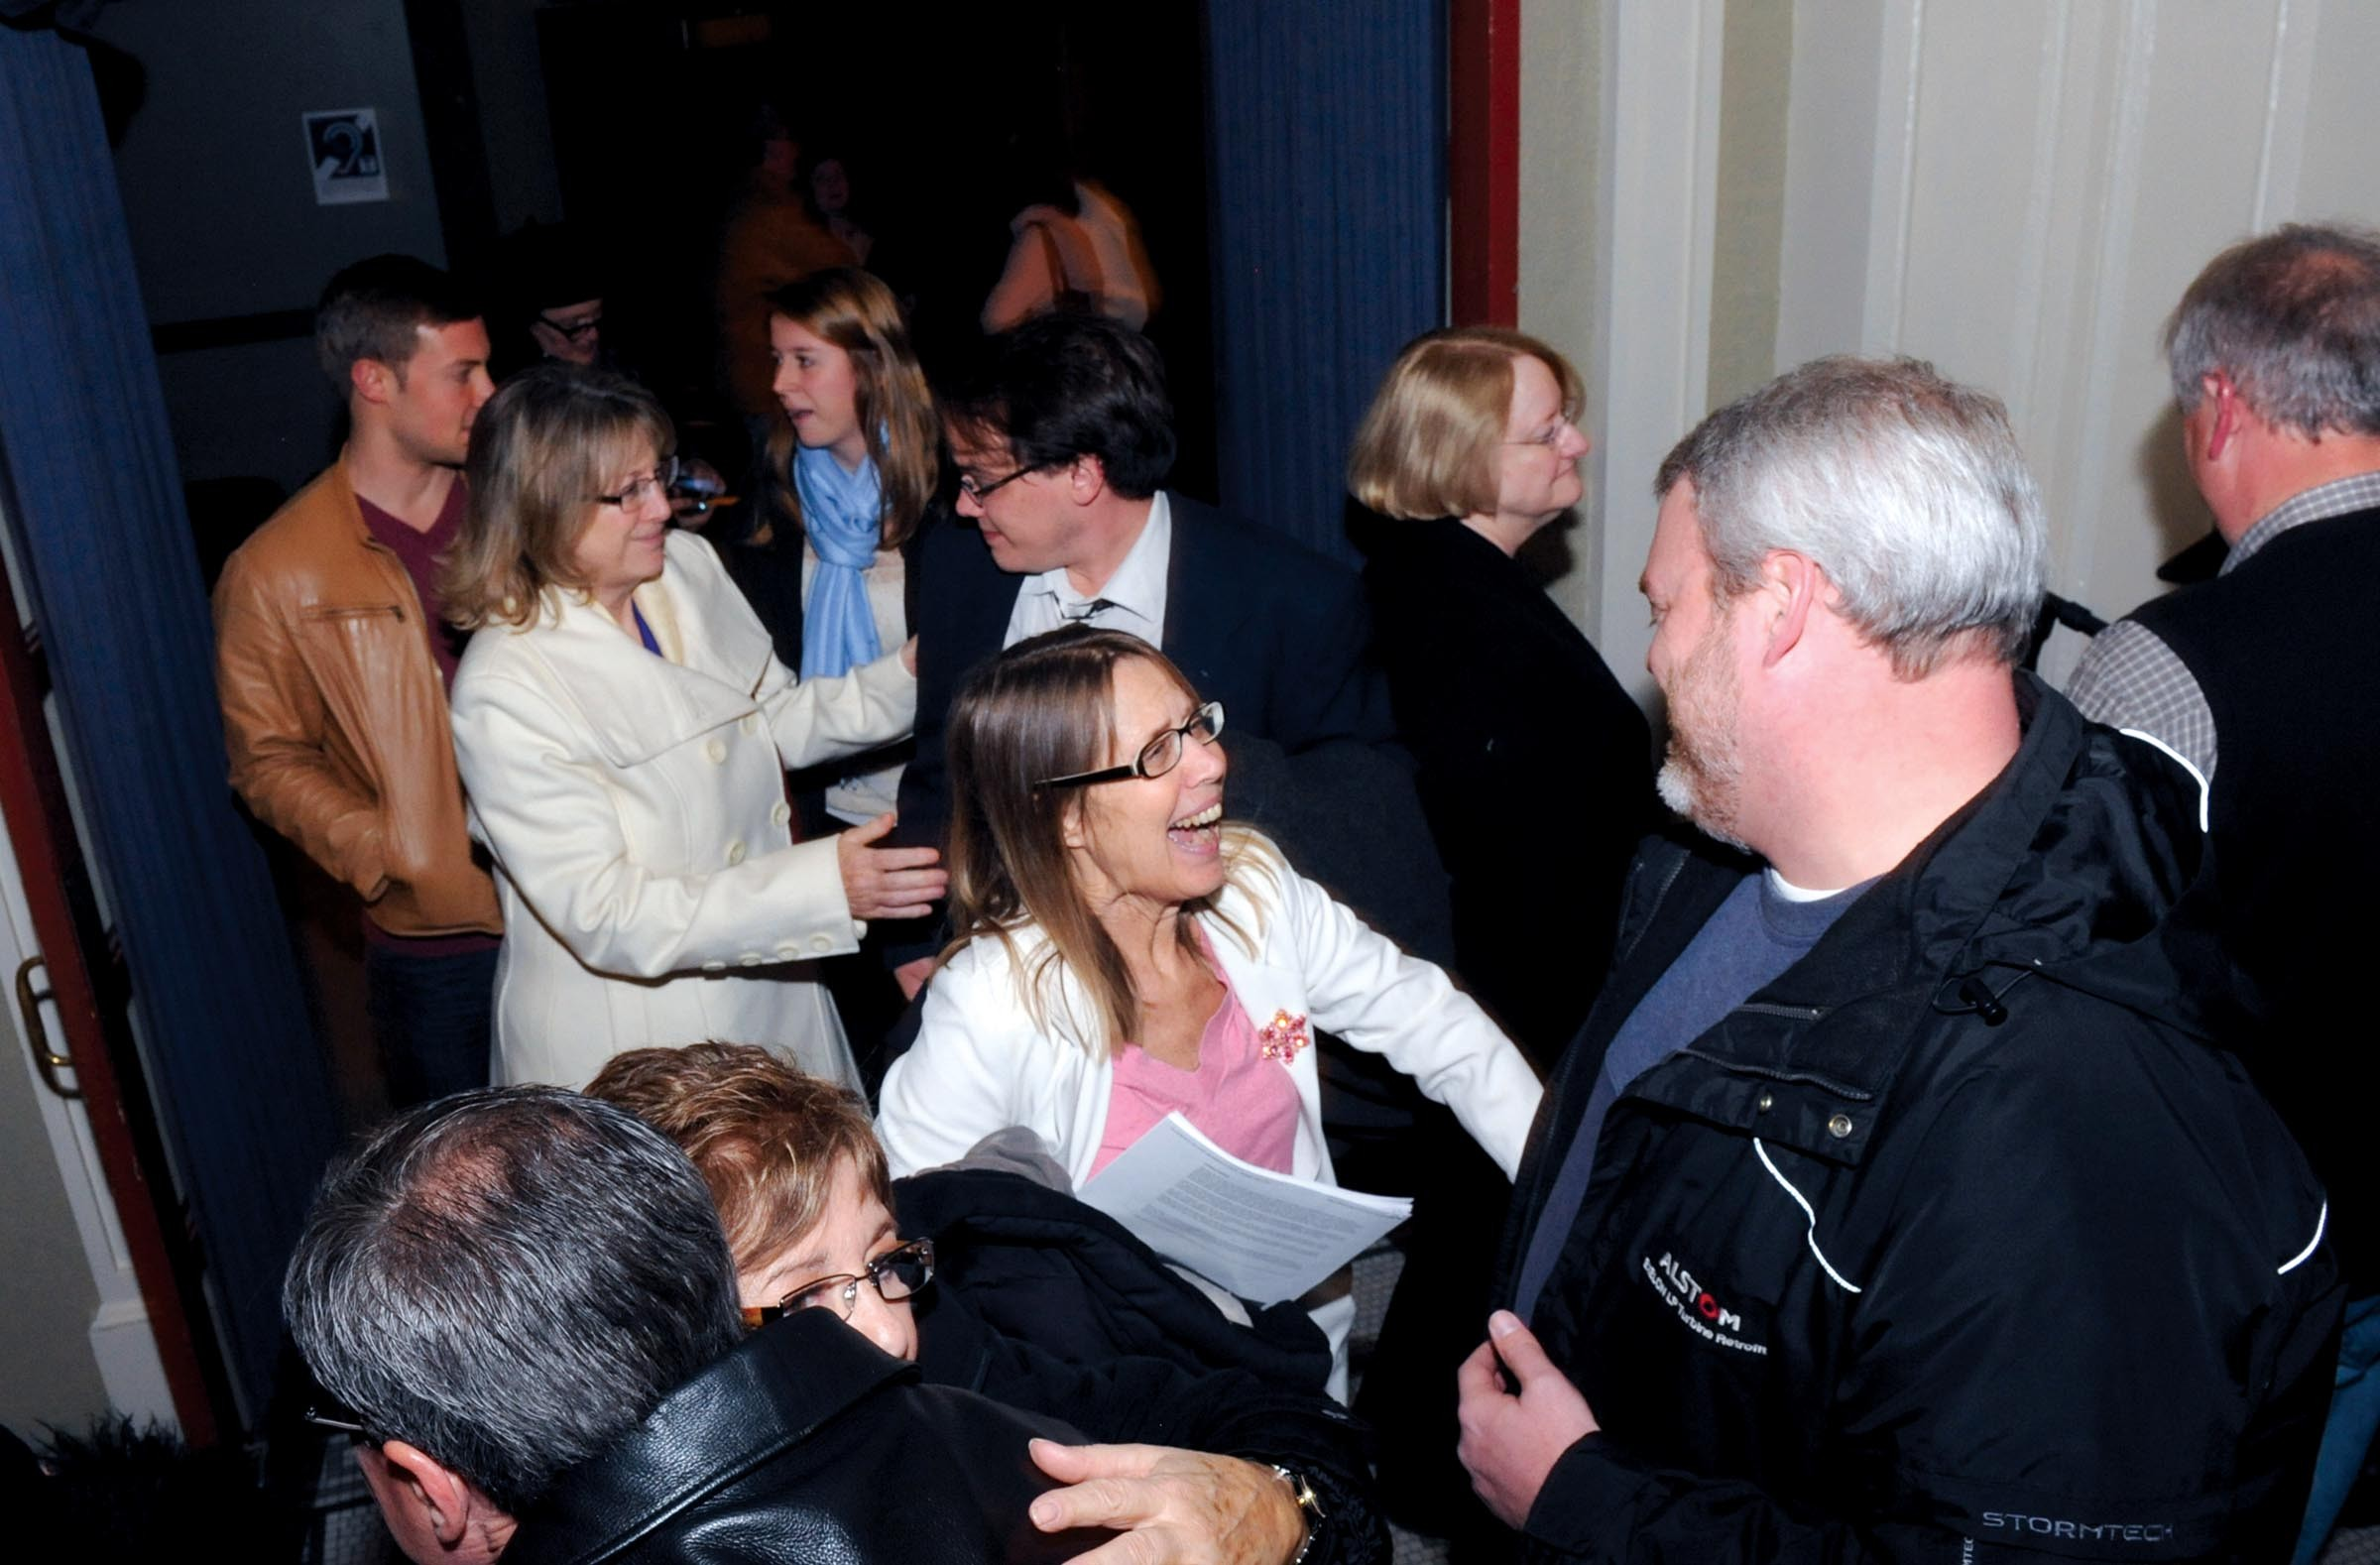 After her ouster from the Firehouse, Carol Piersol greets well-wishers Dec. 22 during a rally in her honor at the November Theatre. - SCOTT ELMQUIST